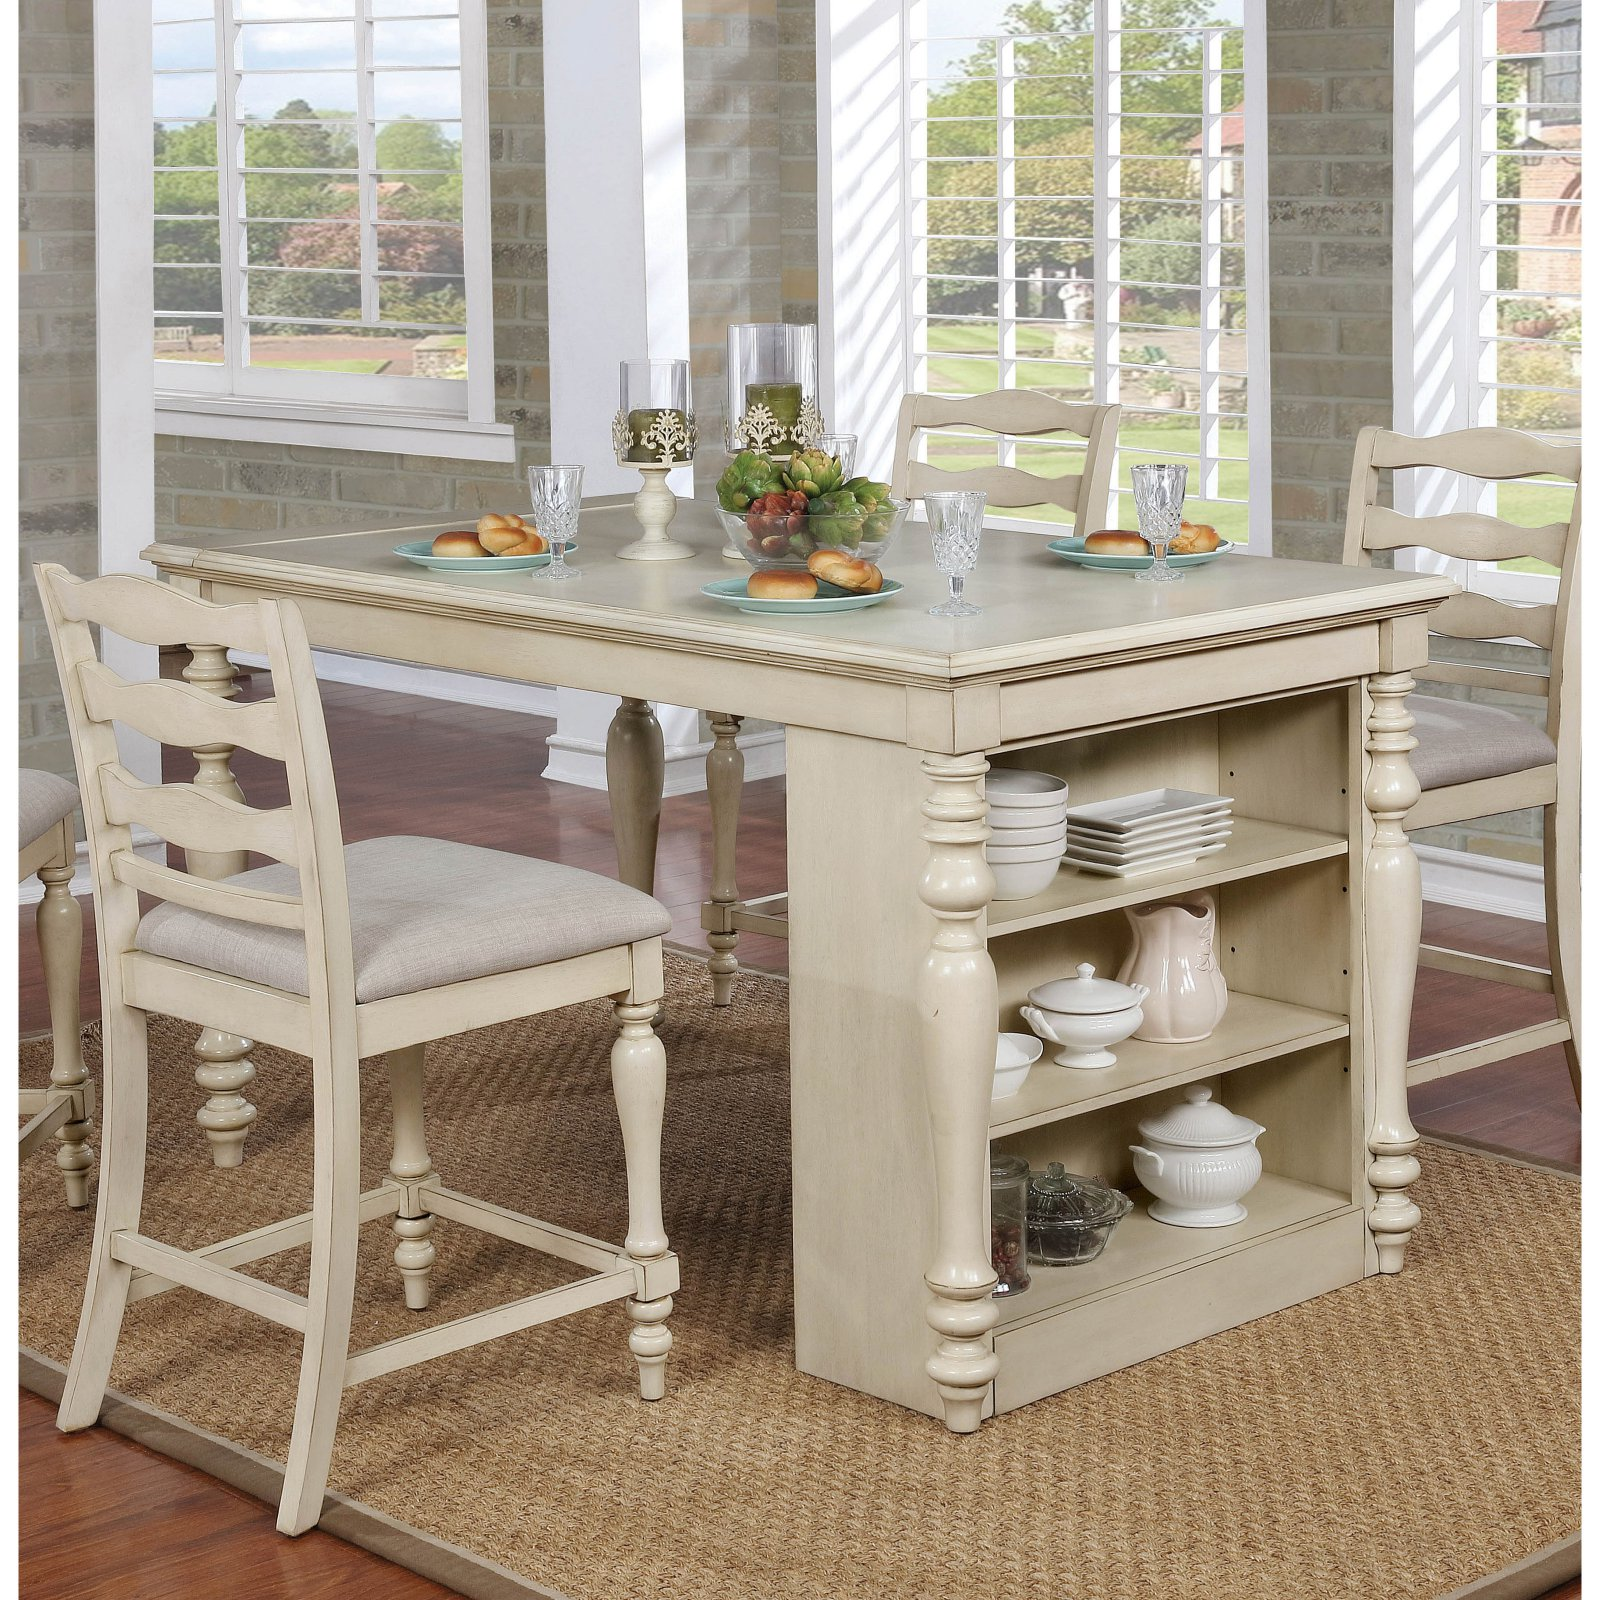 Furniture of America Wilson Rustic Counter Height USB